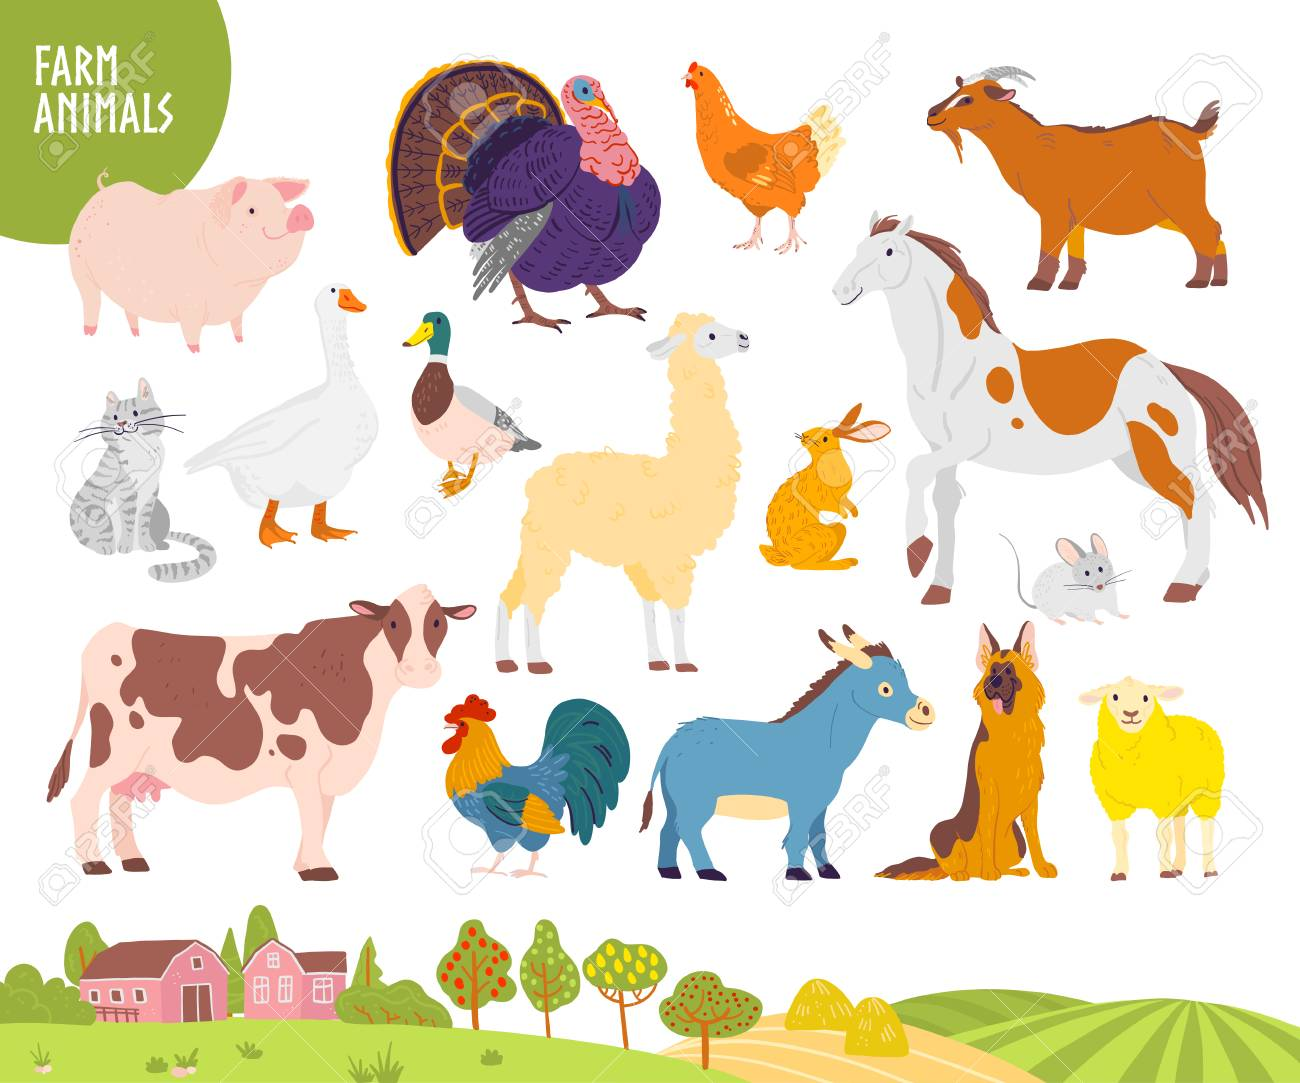 Vector set of farm animal: pig, chicken, cow, horse etc with cozy village landscape, house, garden, field. White background. Flat hand drawn style. For label, banner, logo, book, alphabet illustration - 124886655